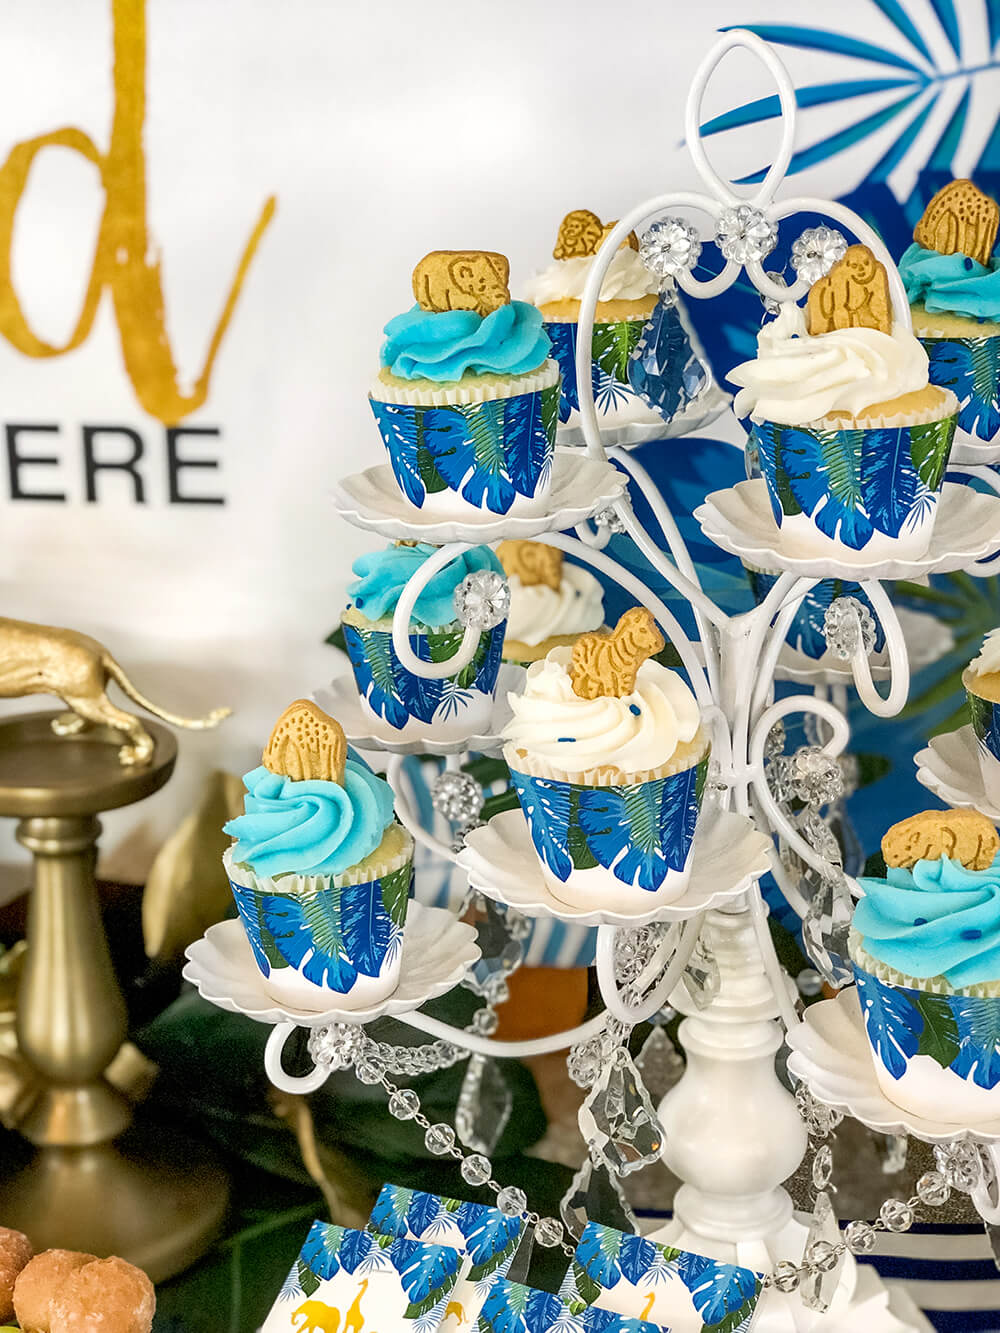 Cupcakes with jungle animal topper and leaf wrappers for a glam safari baby shower